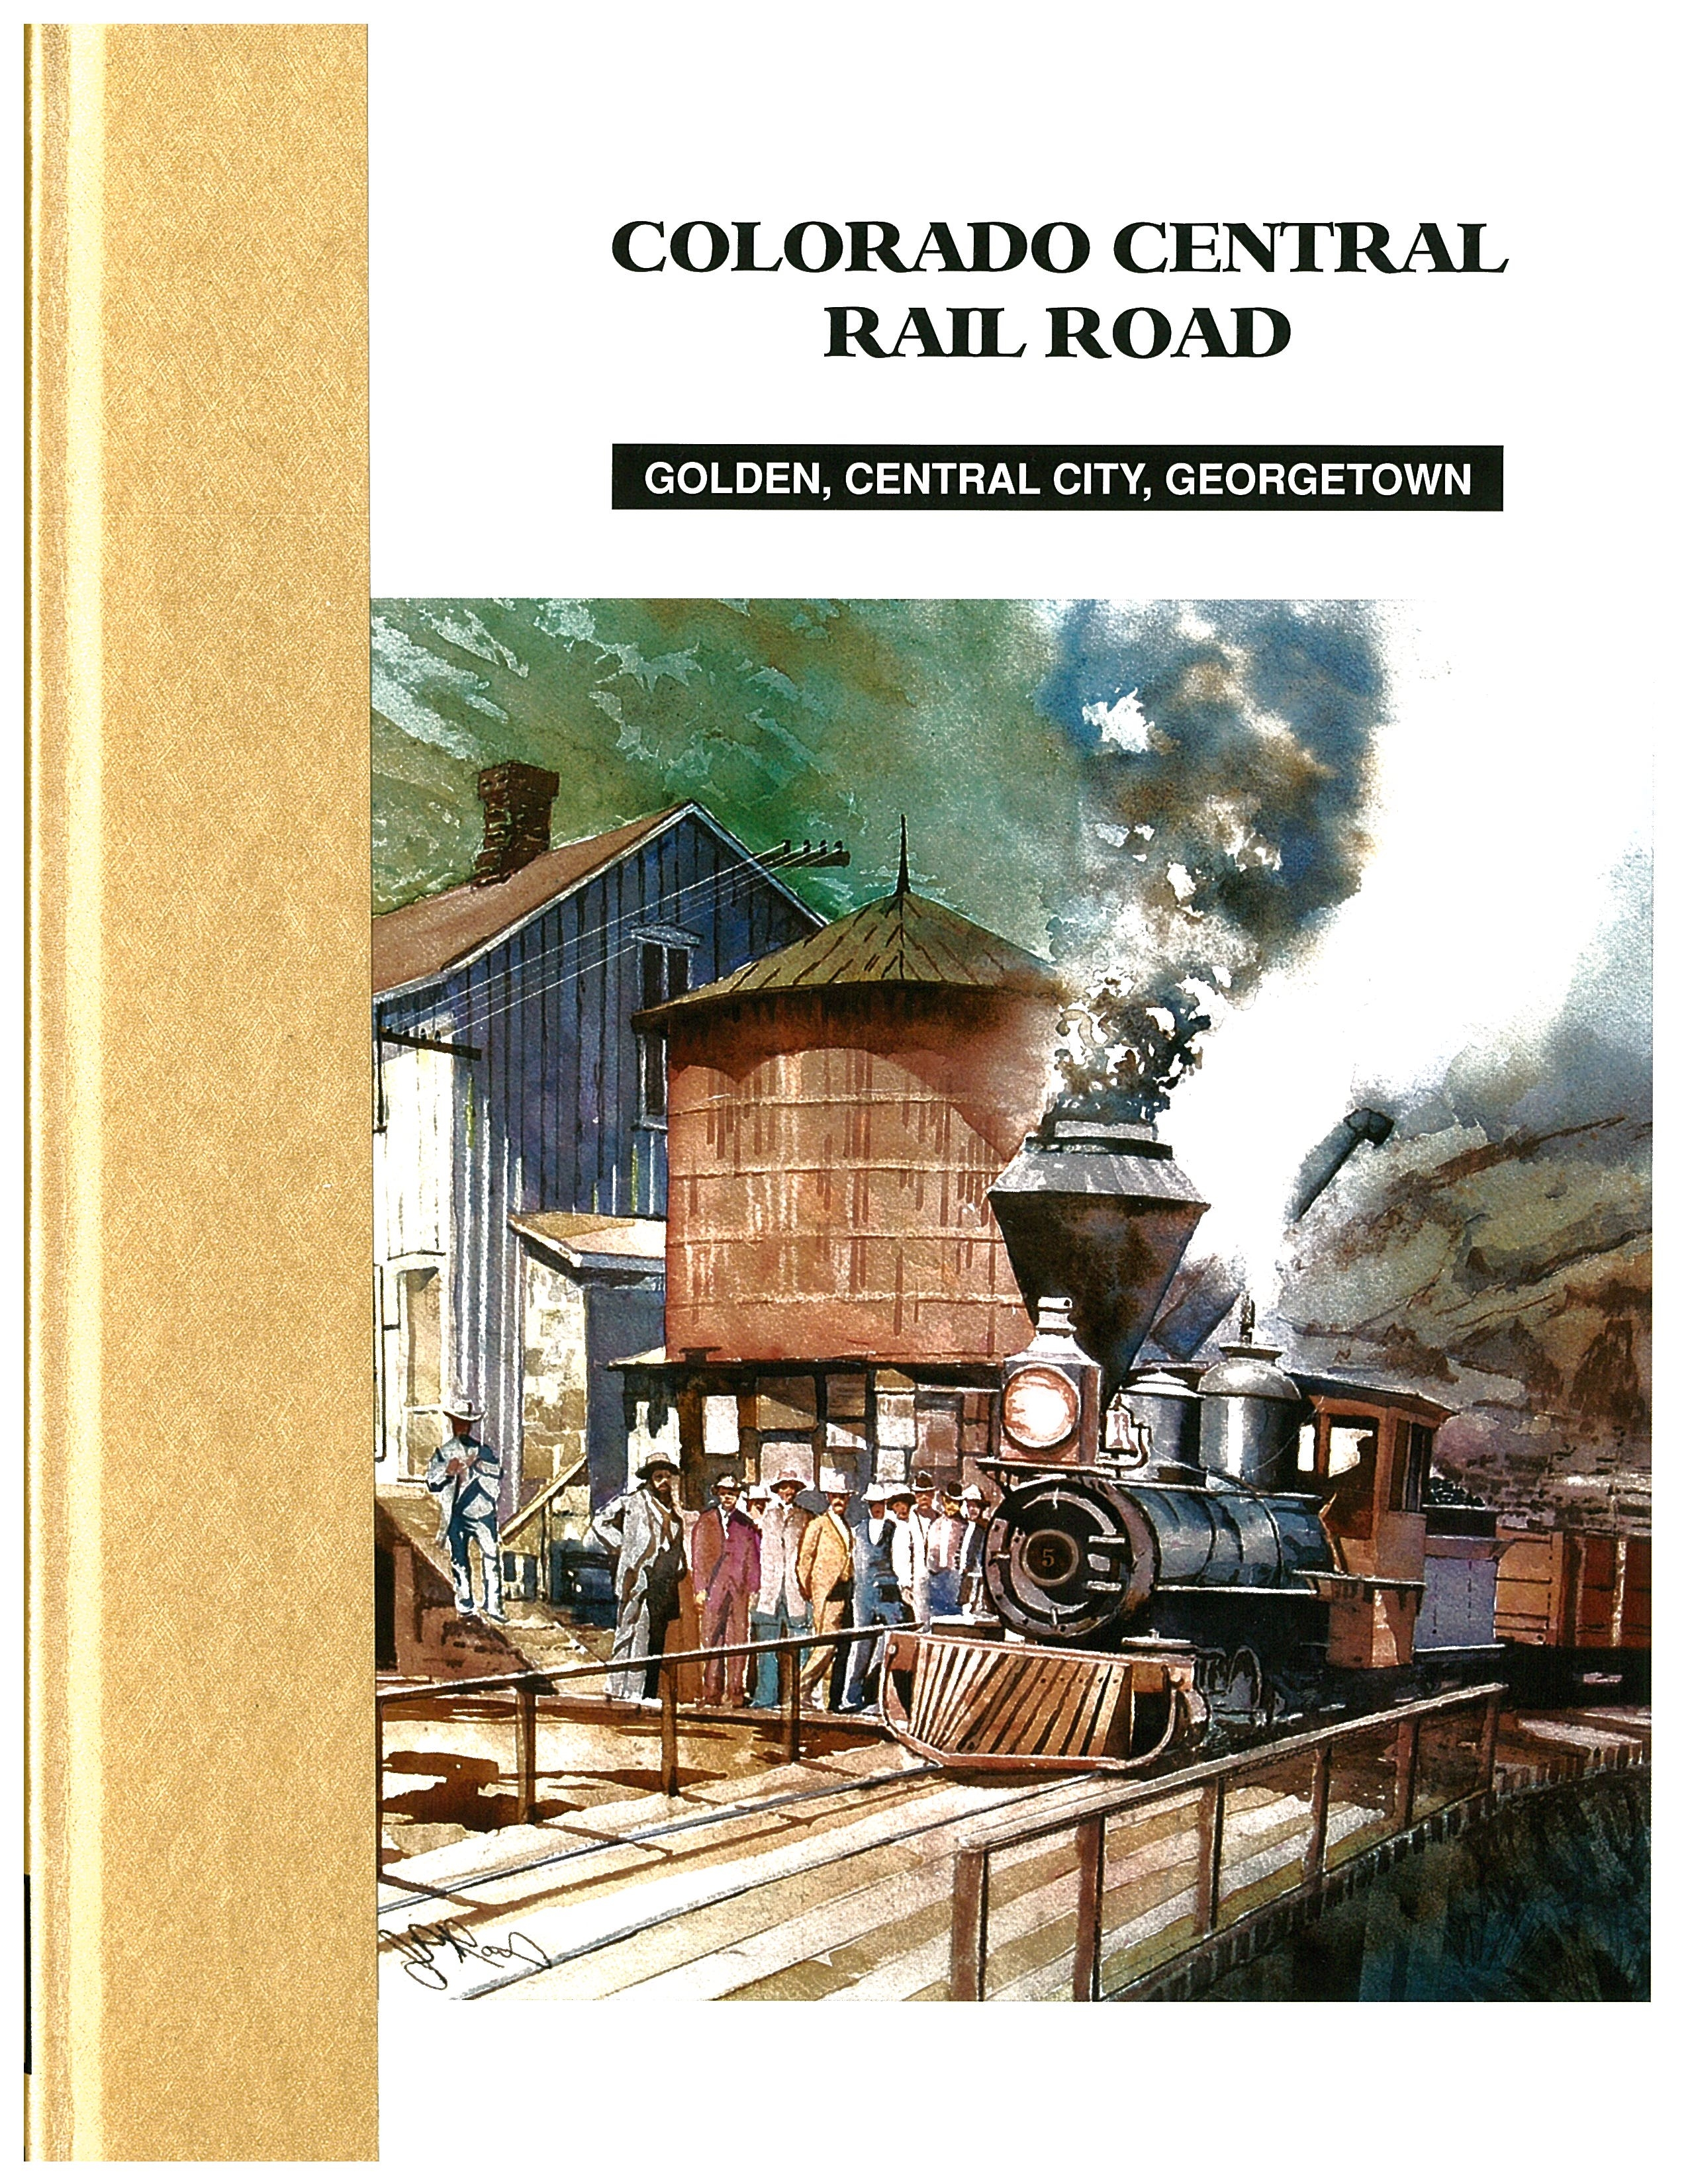 Colorado Central Railroad - Golden, Central City, Georgetwon